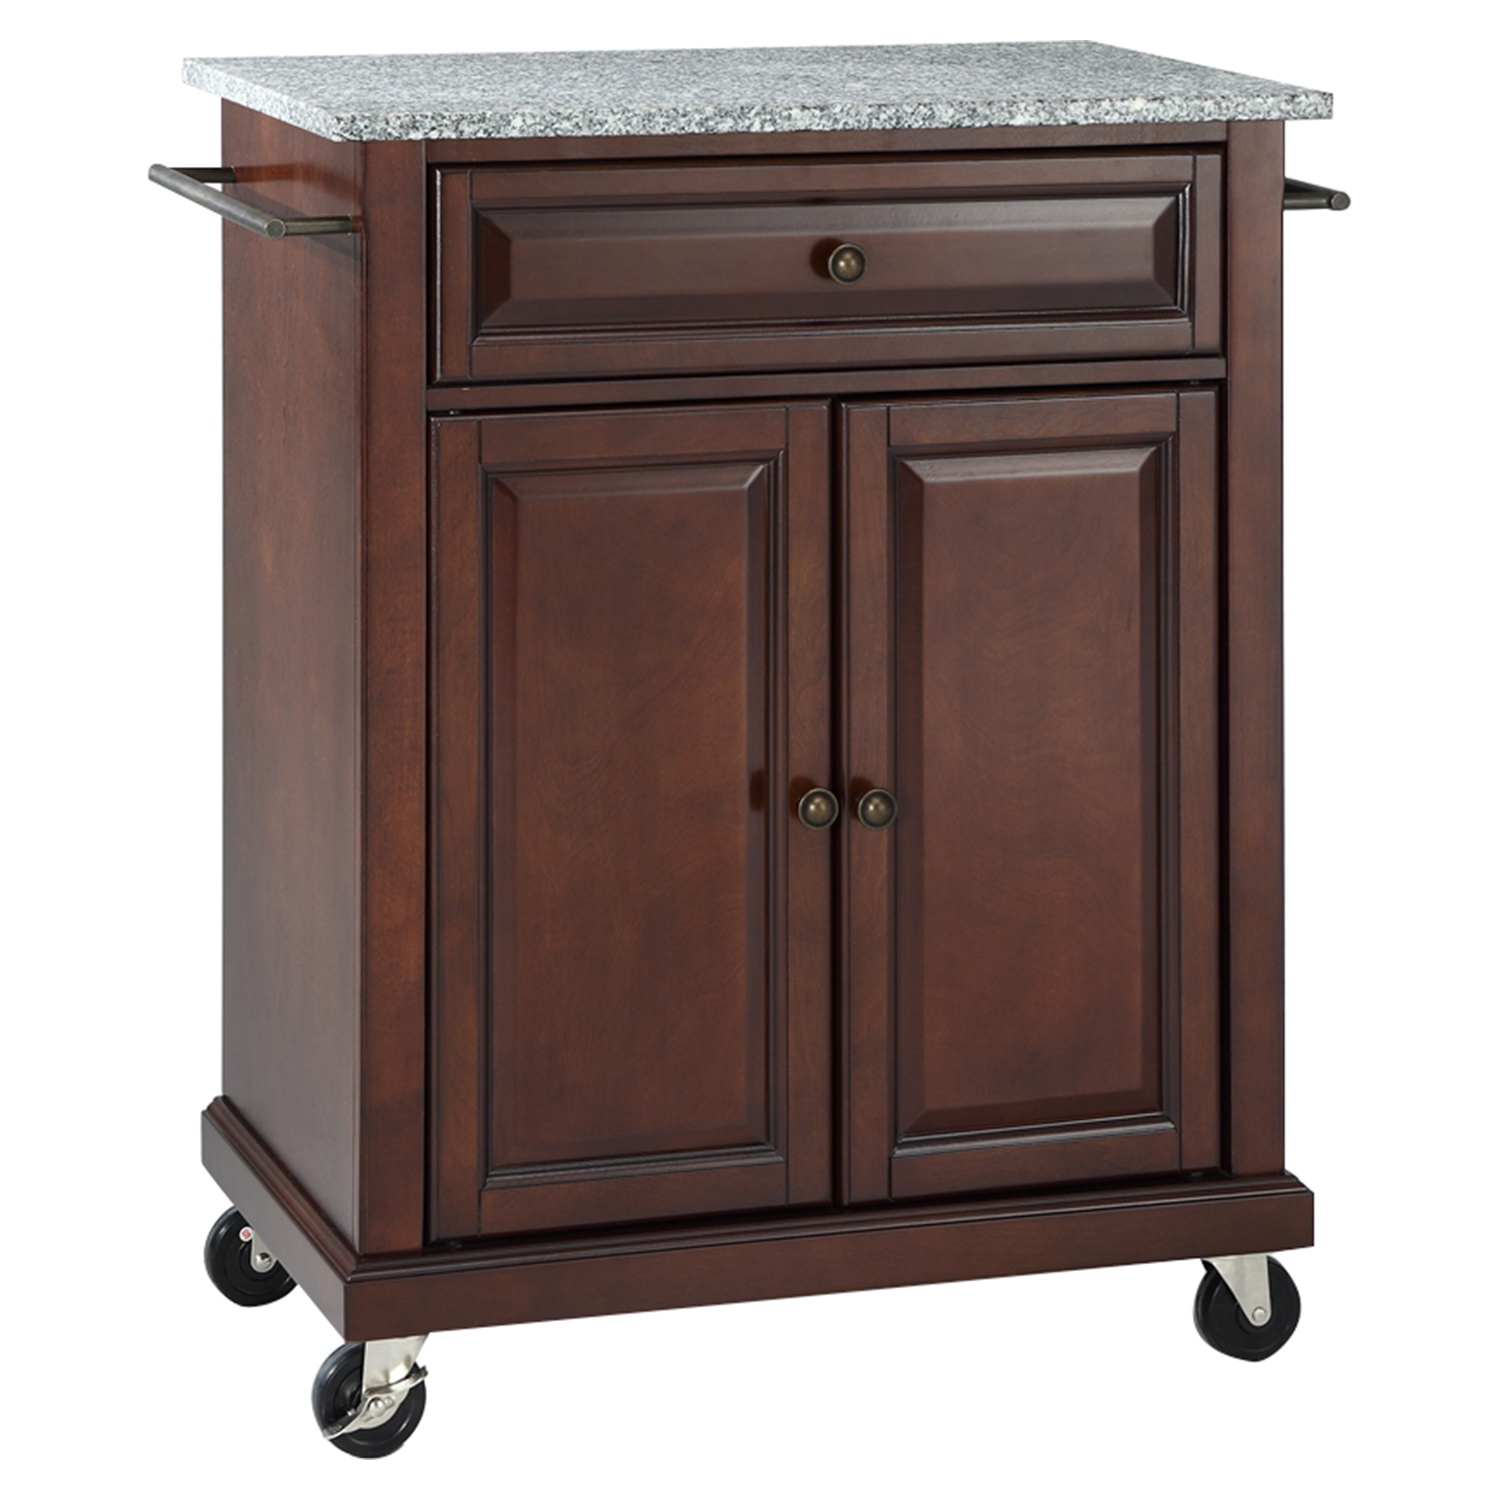 Solid Granite Top Portable Kitchen Cart/Island - Vintage Mahogany - CROS-KF30023EMA